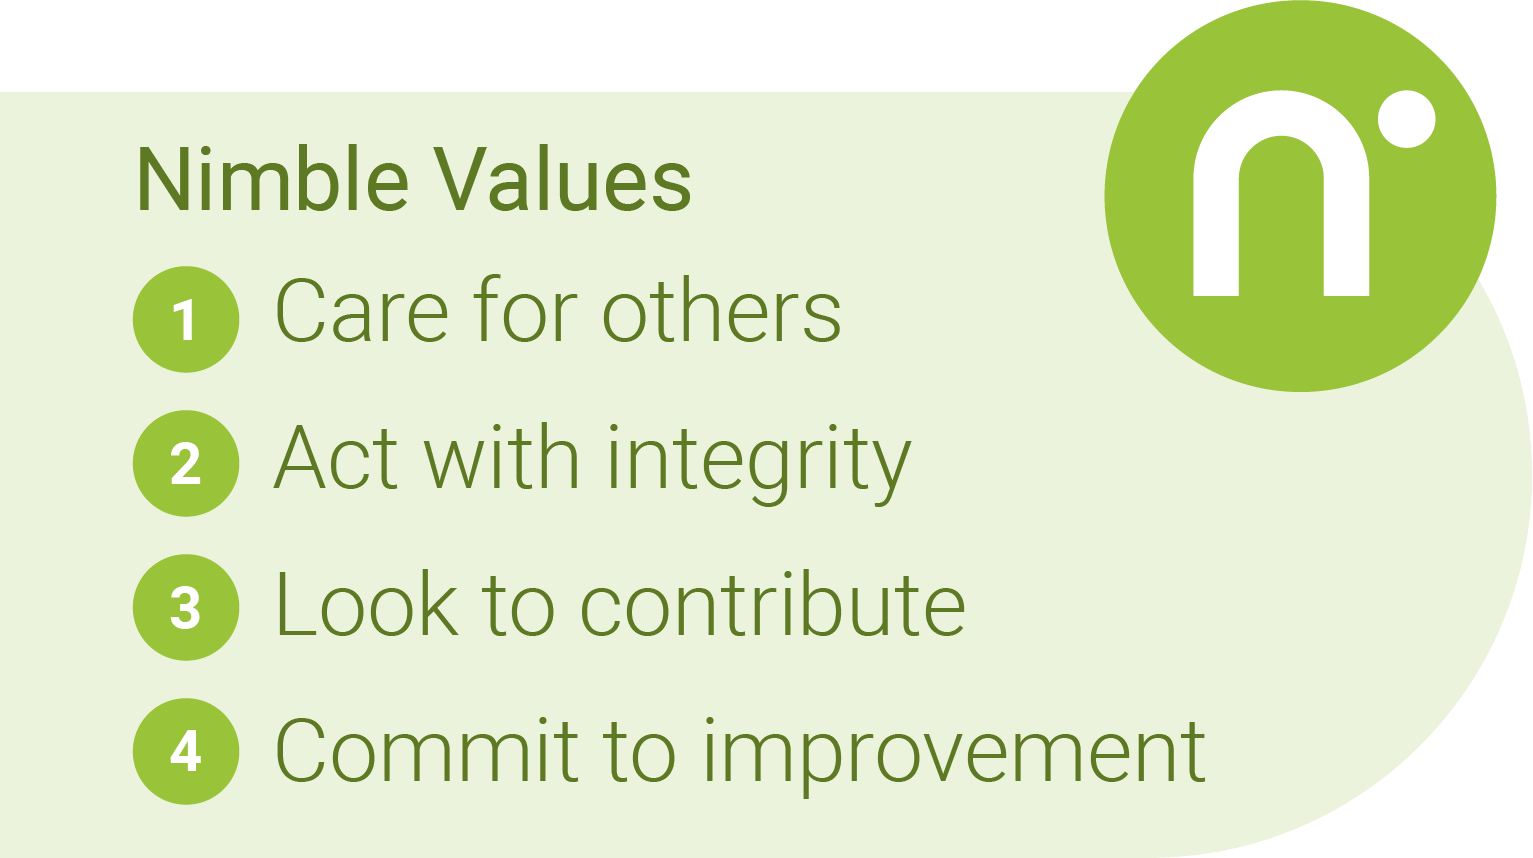 1. Care for others, 2. Act with integrity, 3. Look to contribute, 4. Commit to imporvement